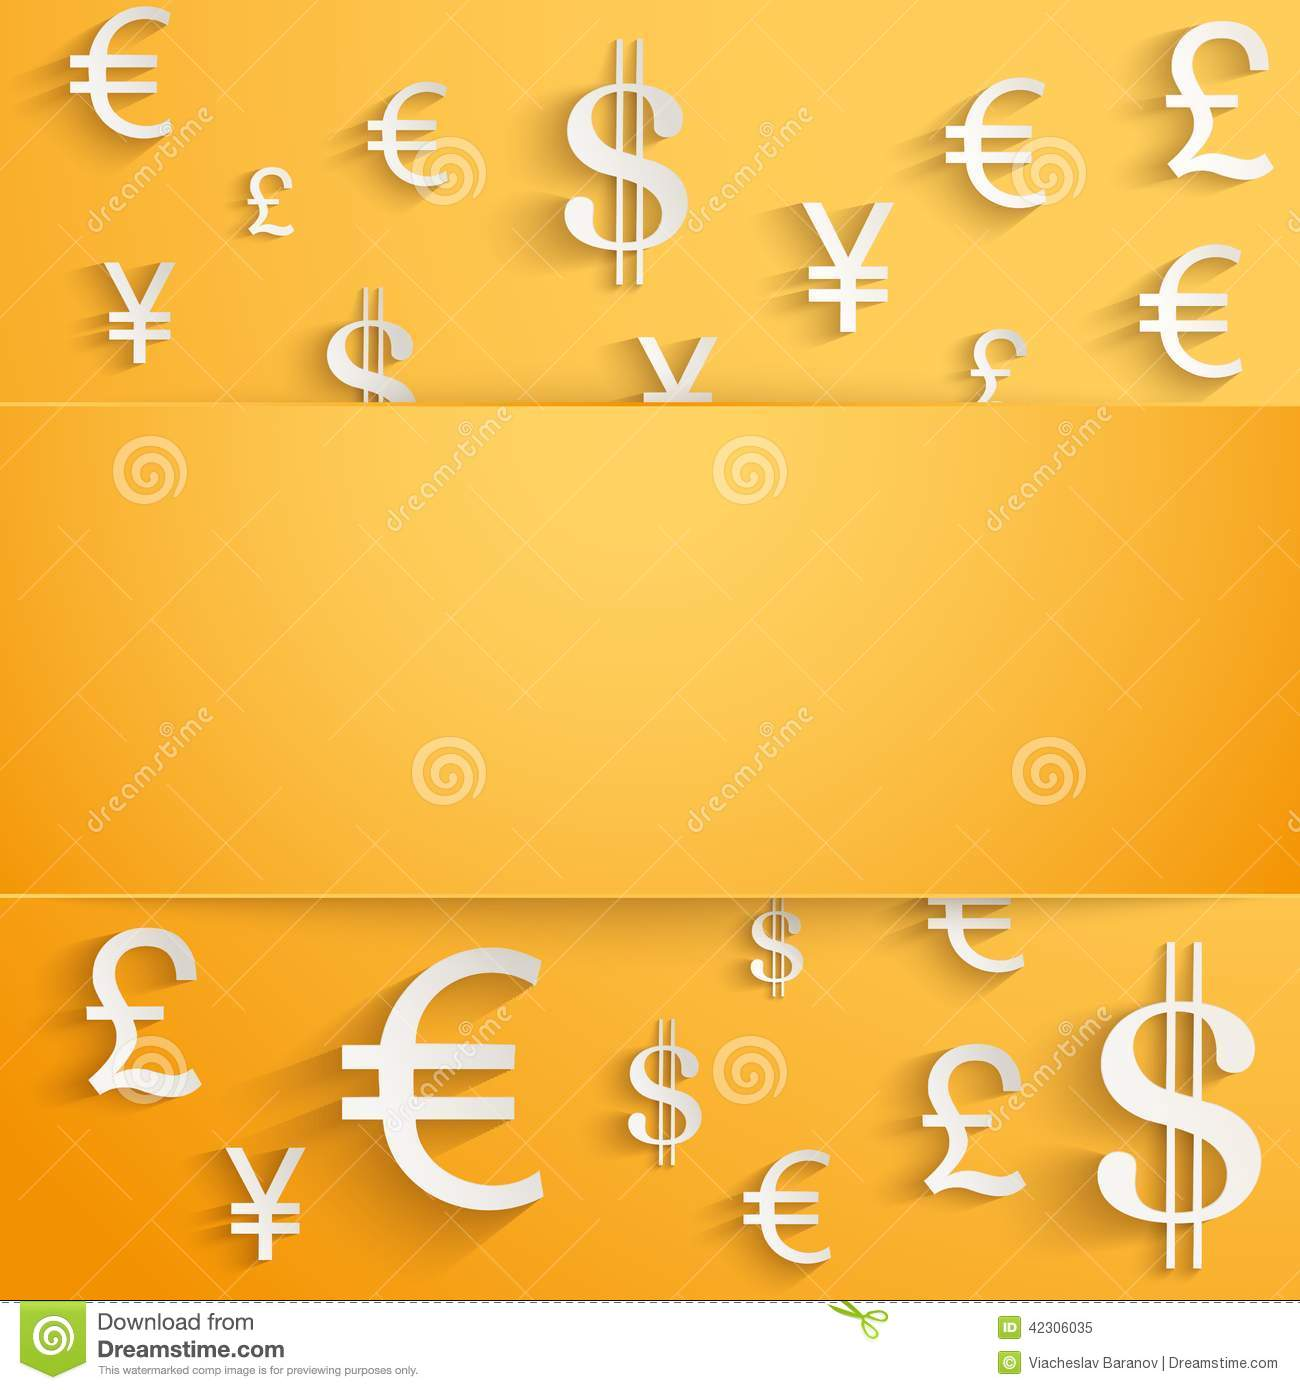 Business Background With Money Currency Symbols Stock